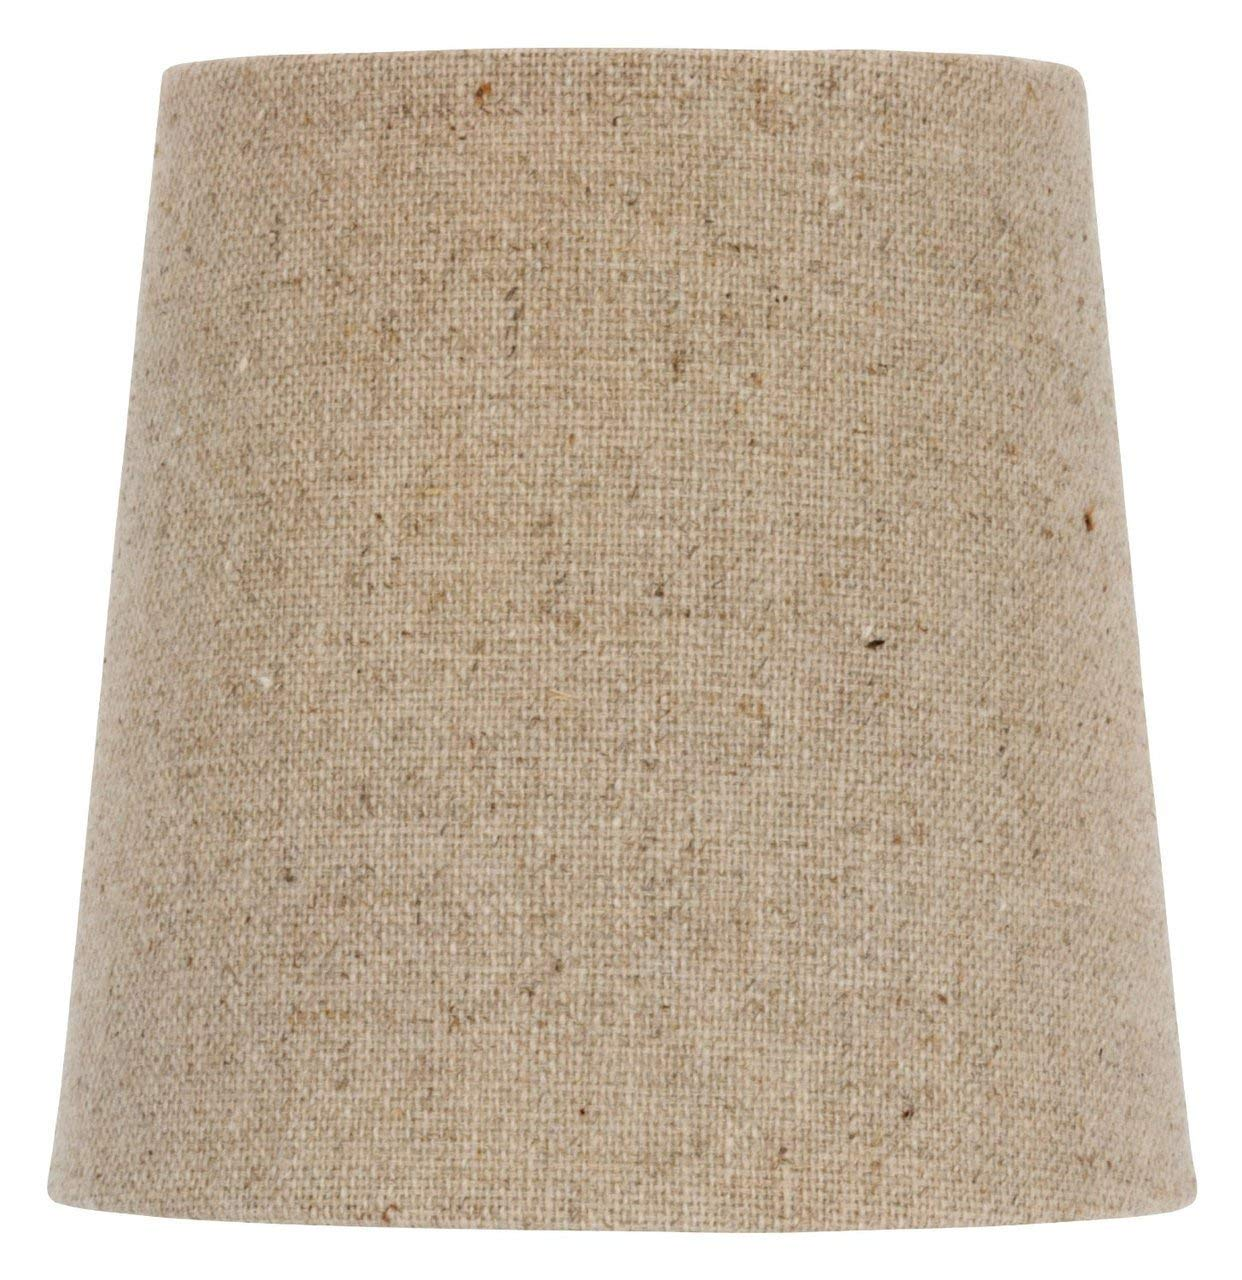 Upgradelights 4 Inch Retro Drum Clip On Chandelier Lamp Shade in Natural Burlap